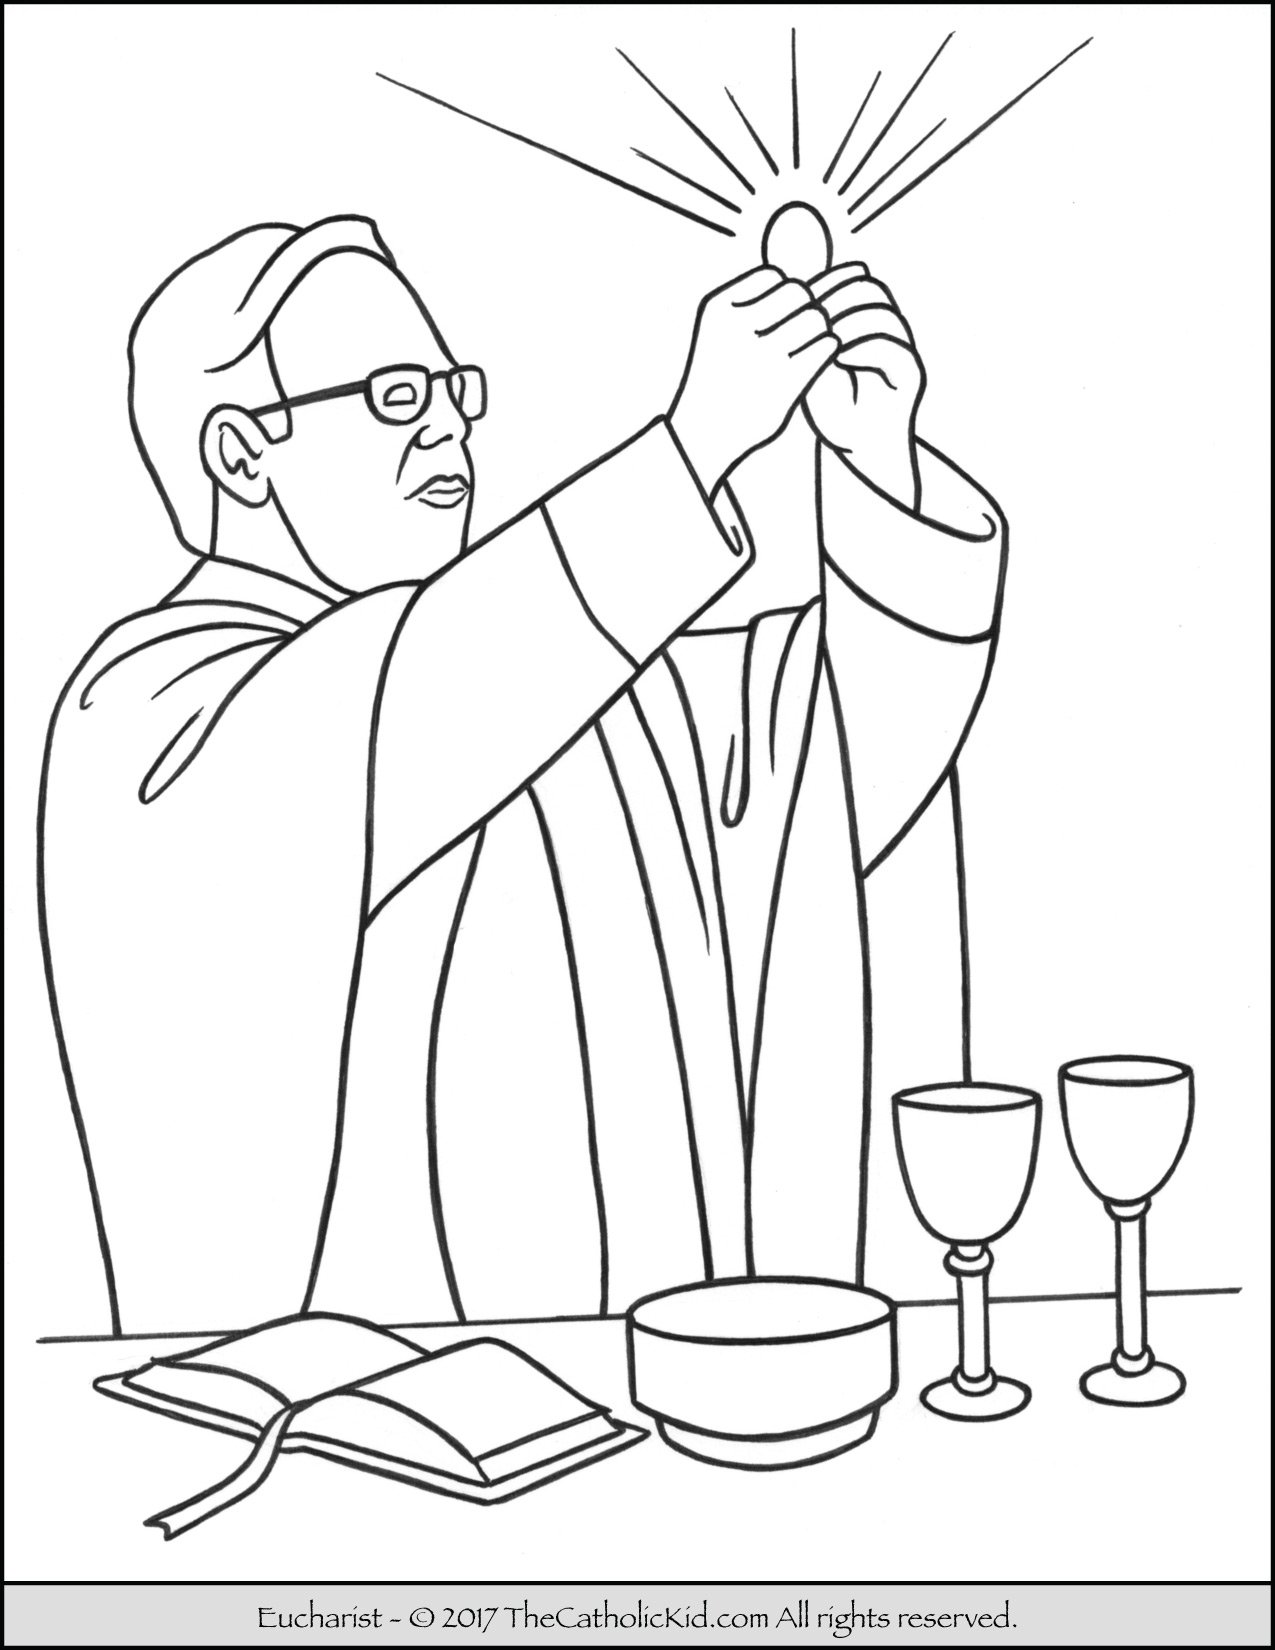 Sacrament Holy Communion Eucharist Coloring Page